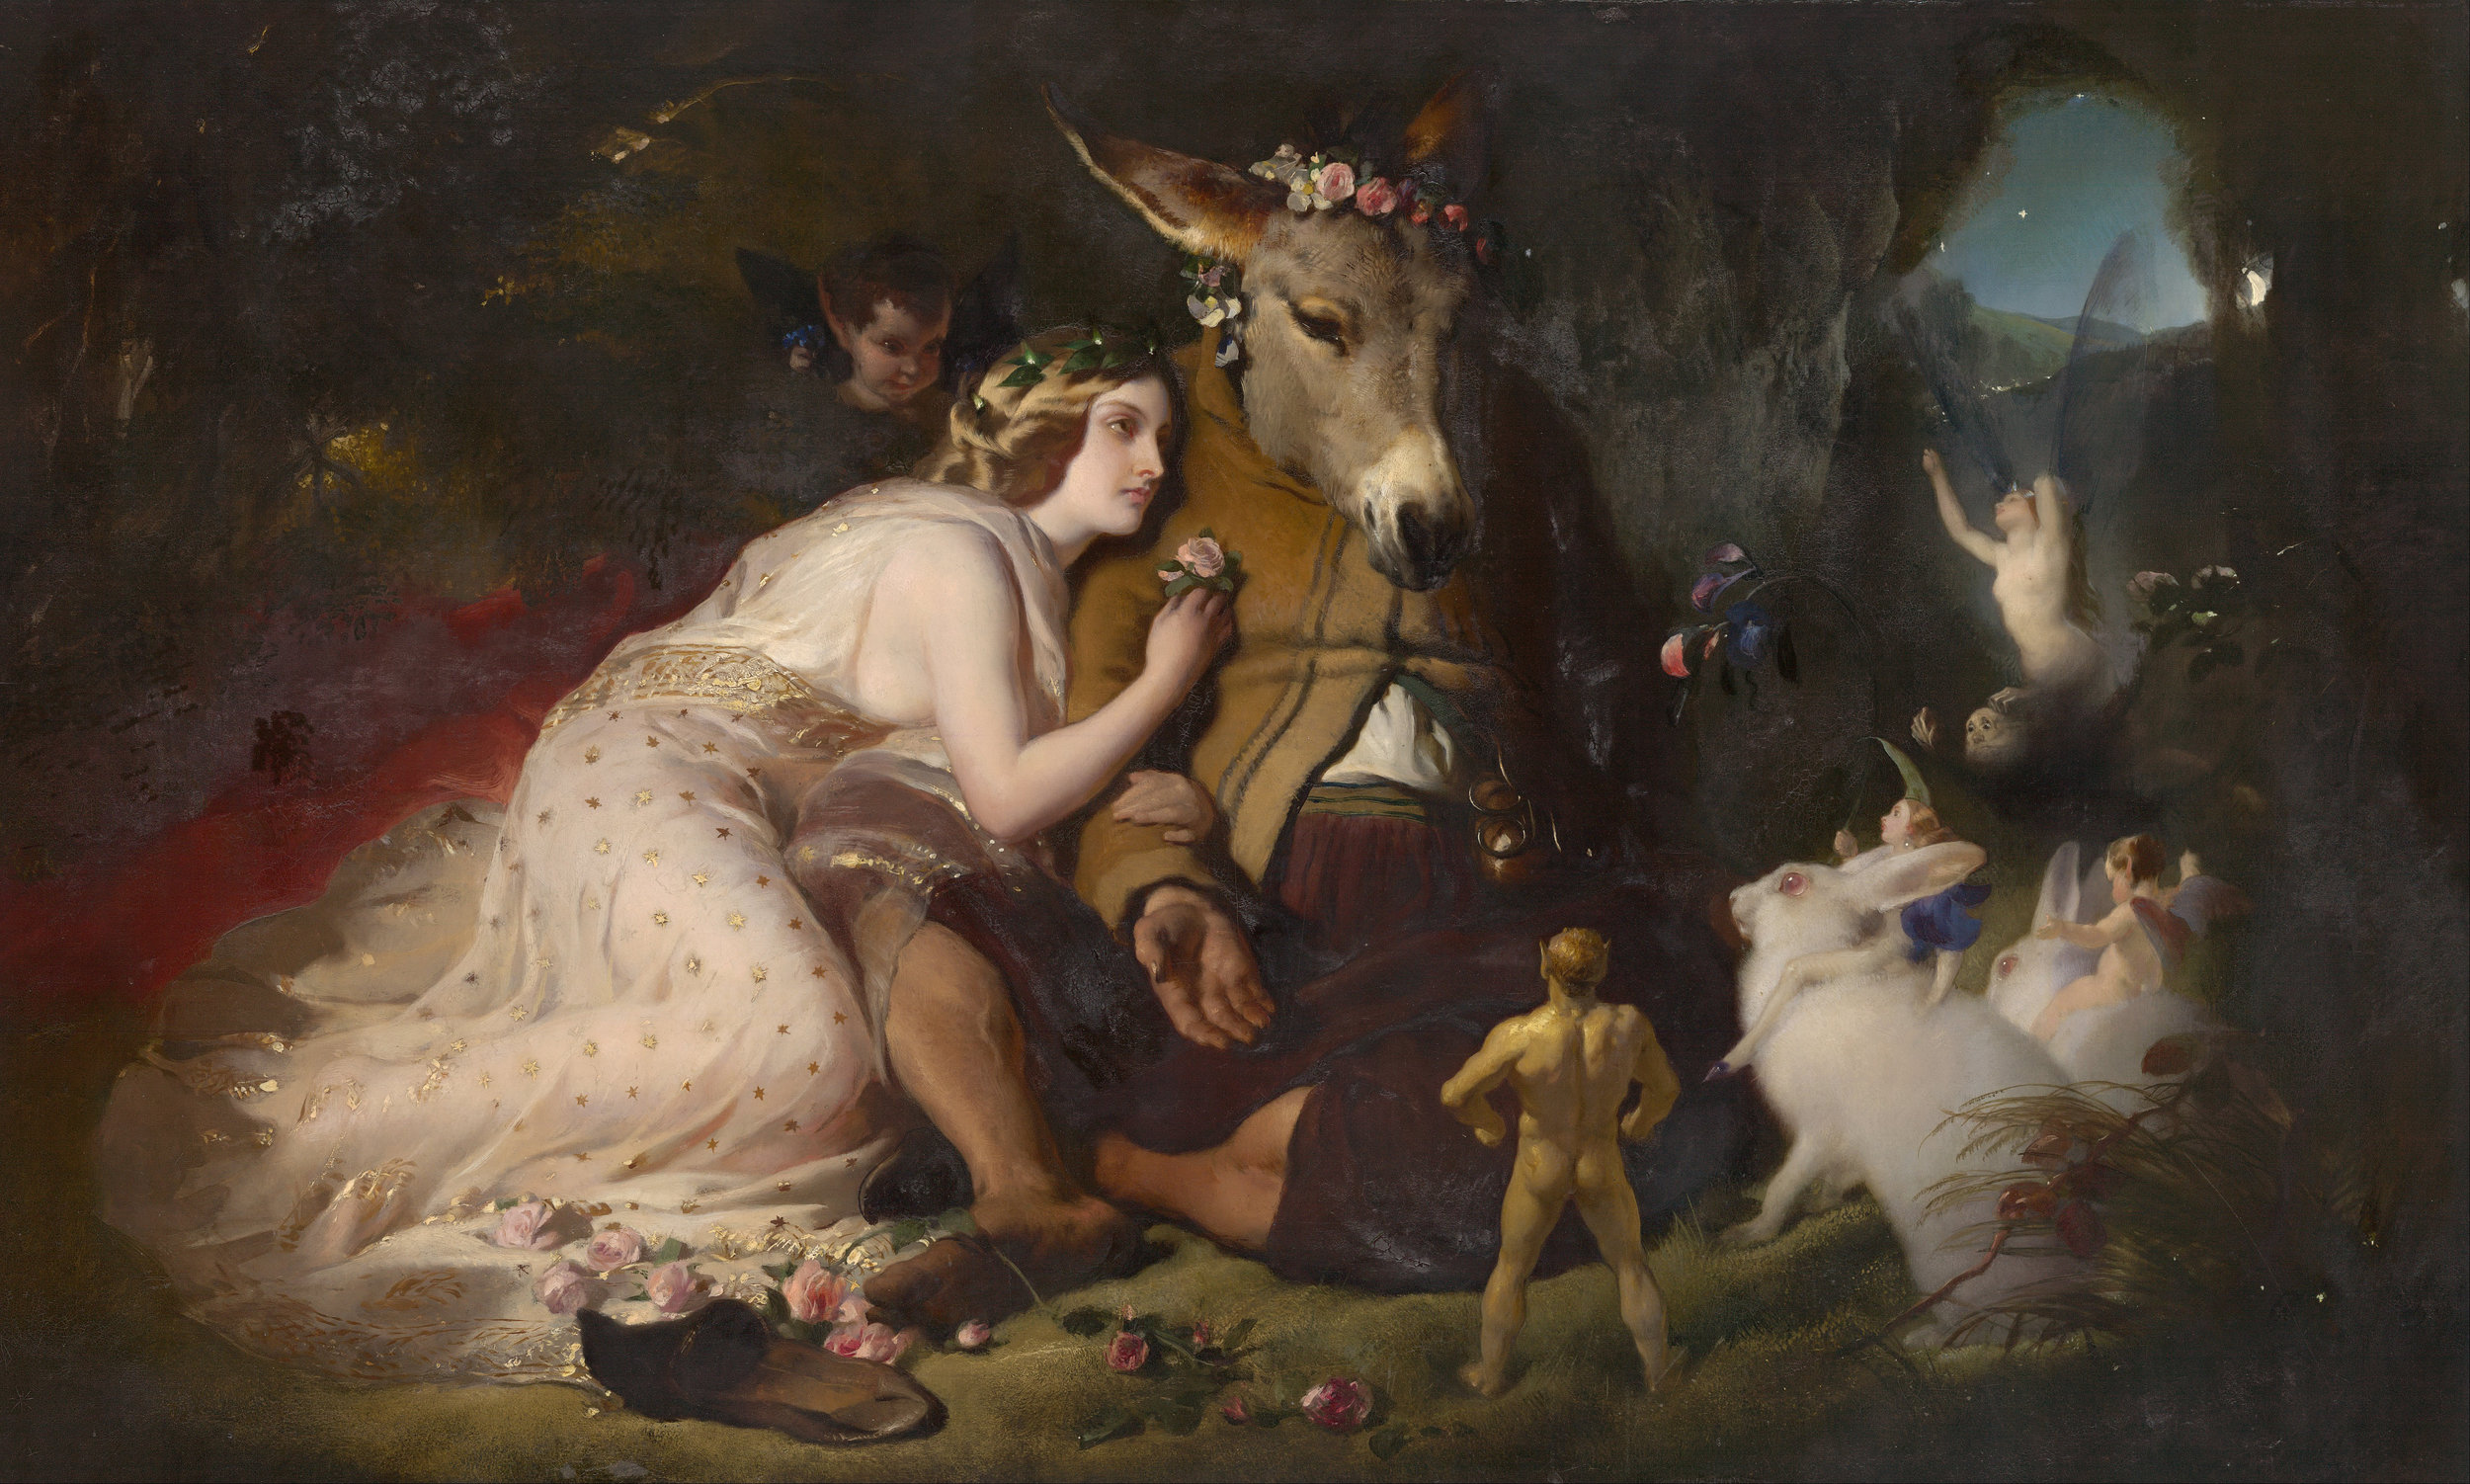 Edwin Landseer, Scene from A Midsummer Night's Dream. Titania and Bottom (1848)